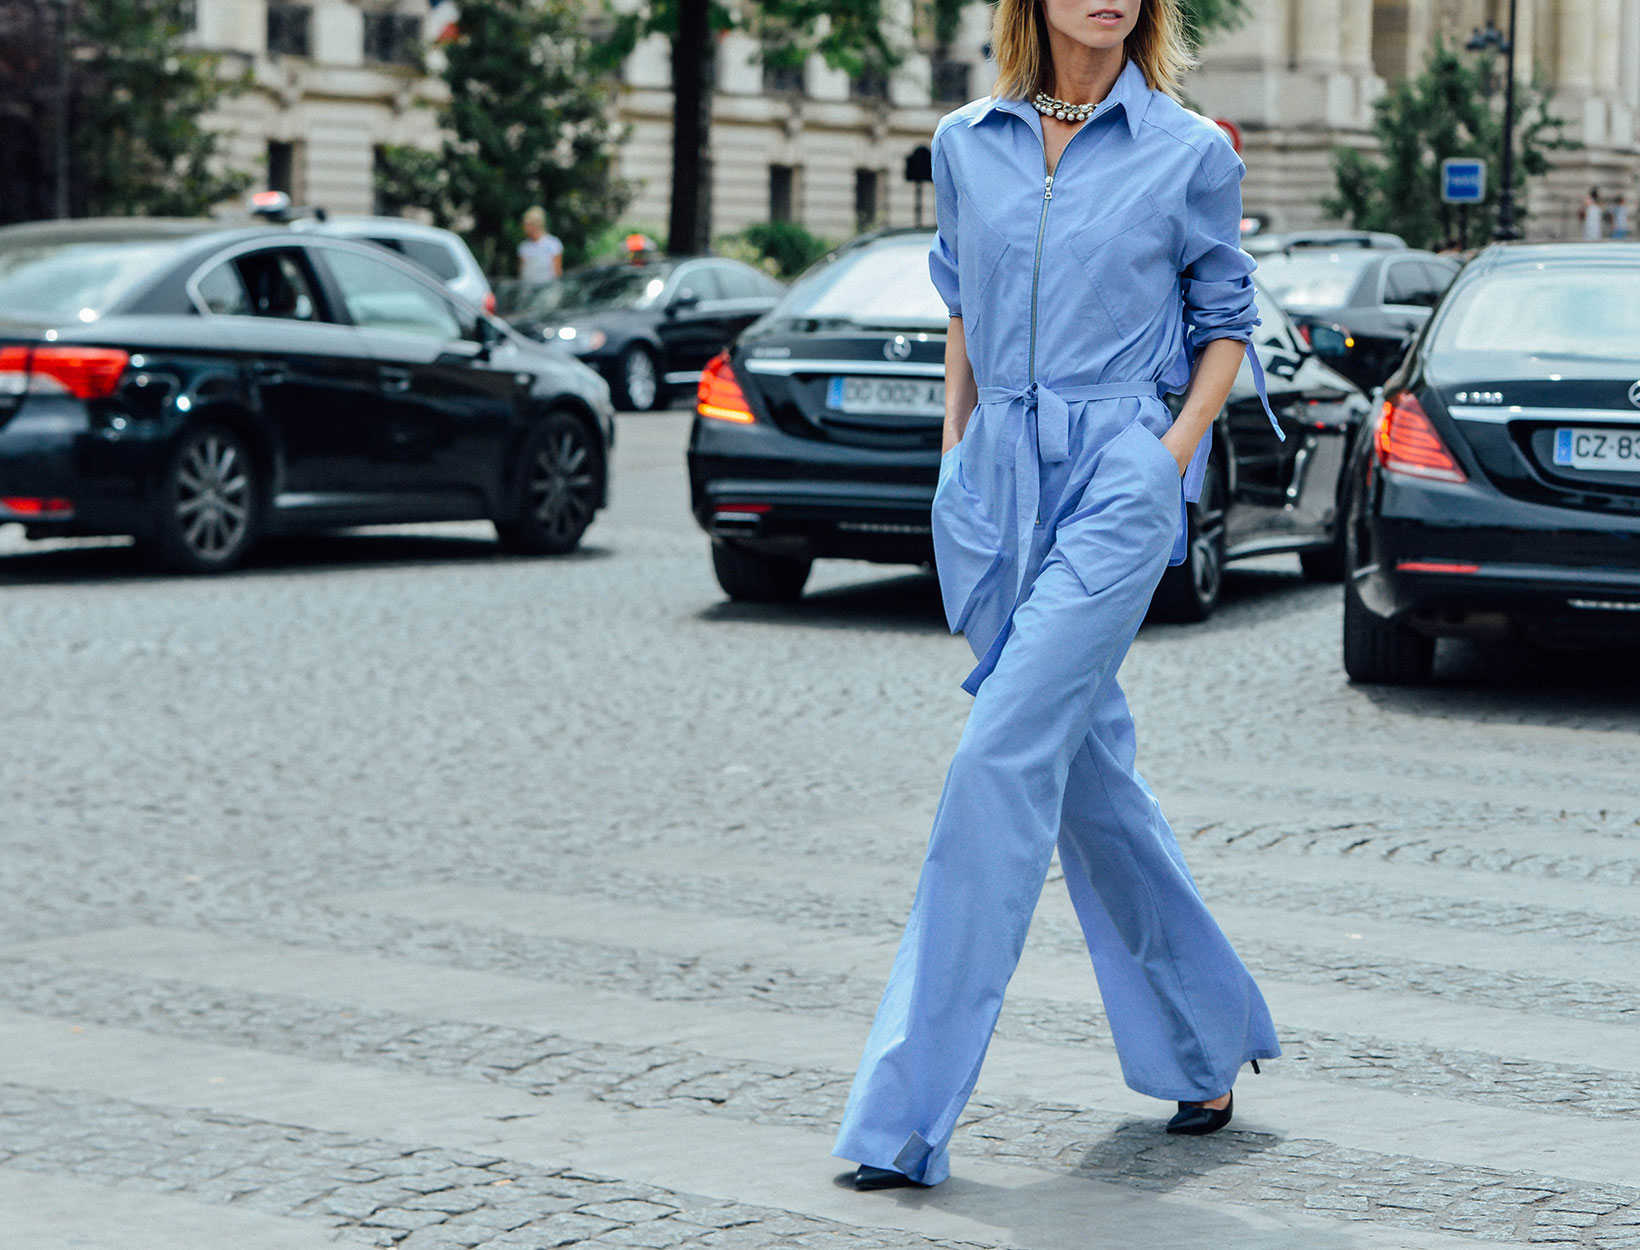 The Style Update: The Jumpsuit